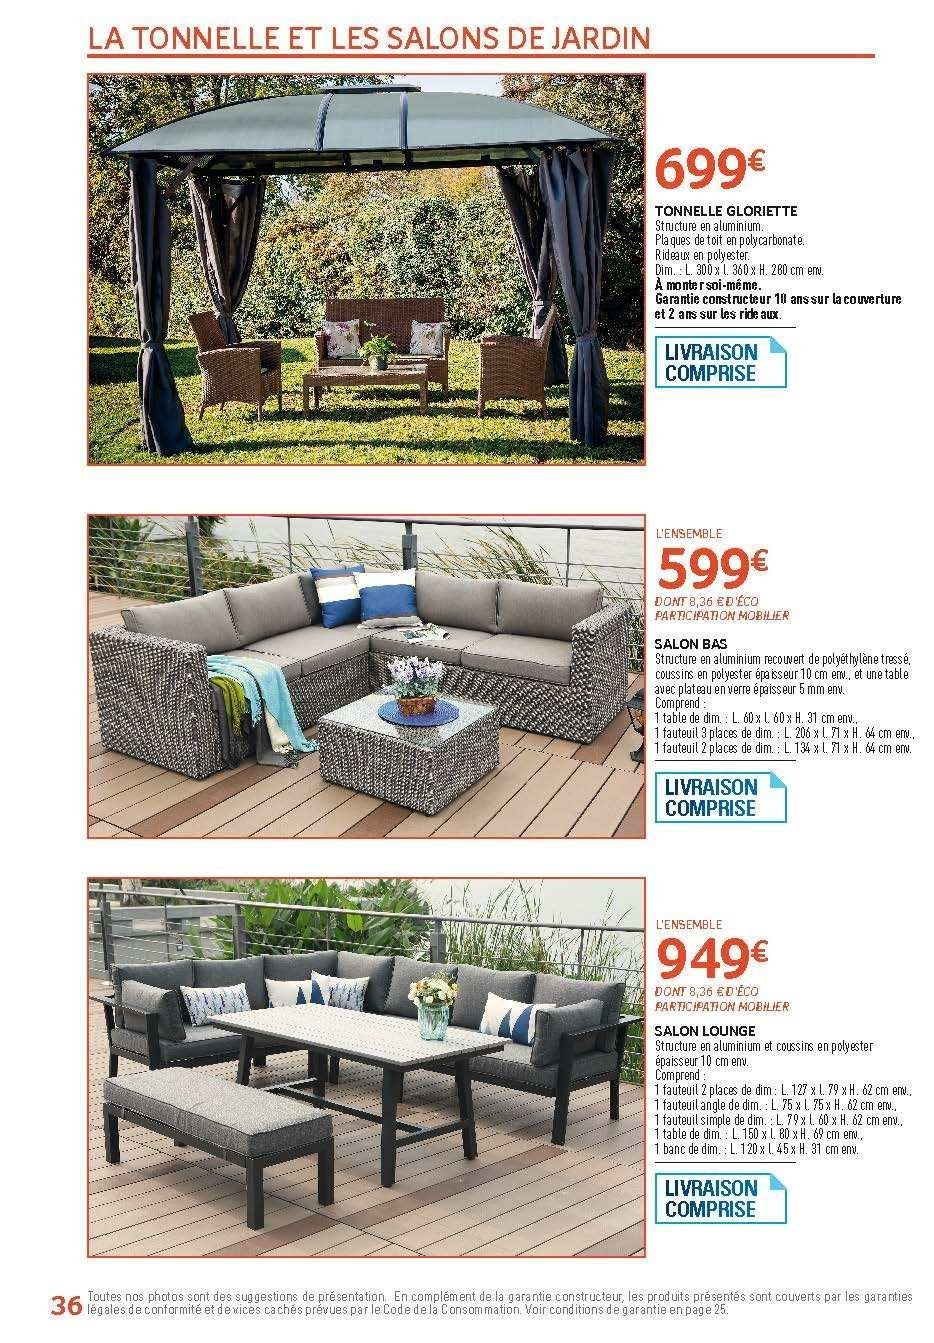 Coussin Photo Leclerc In 2020 Outdoor Furniture Sets Outdoor Decor Outdoor Furniture